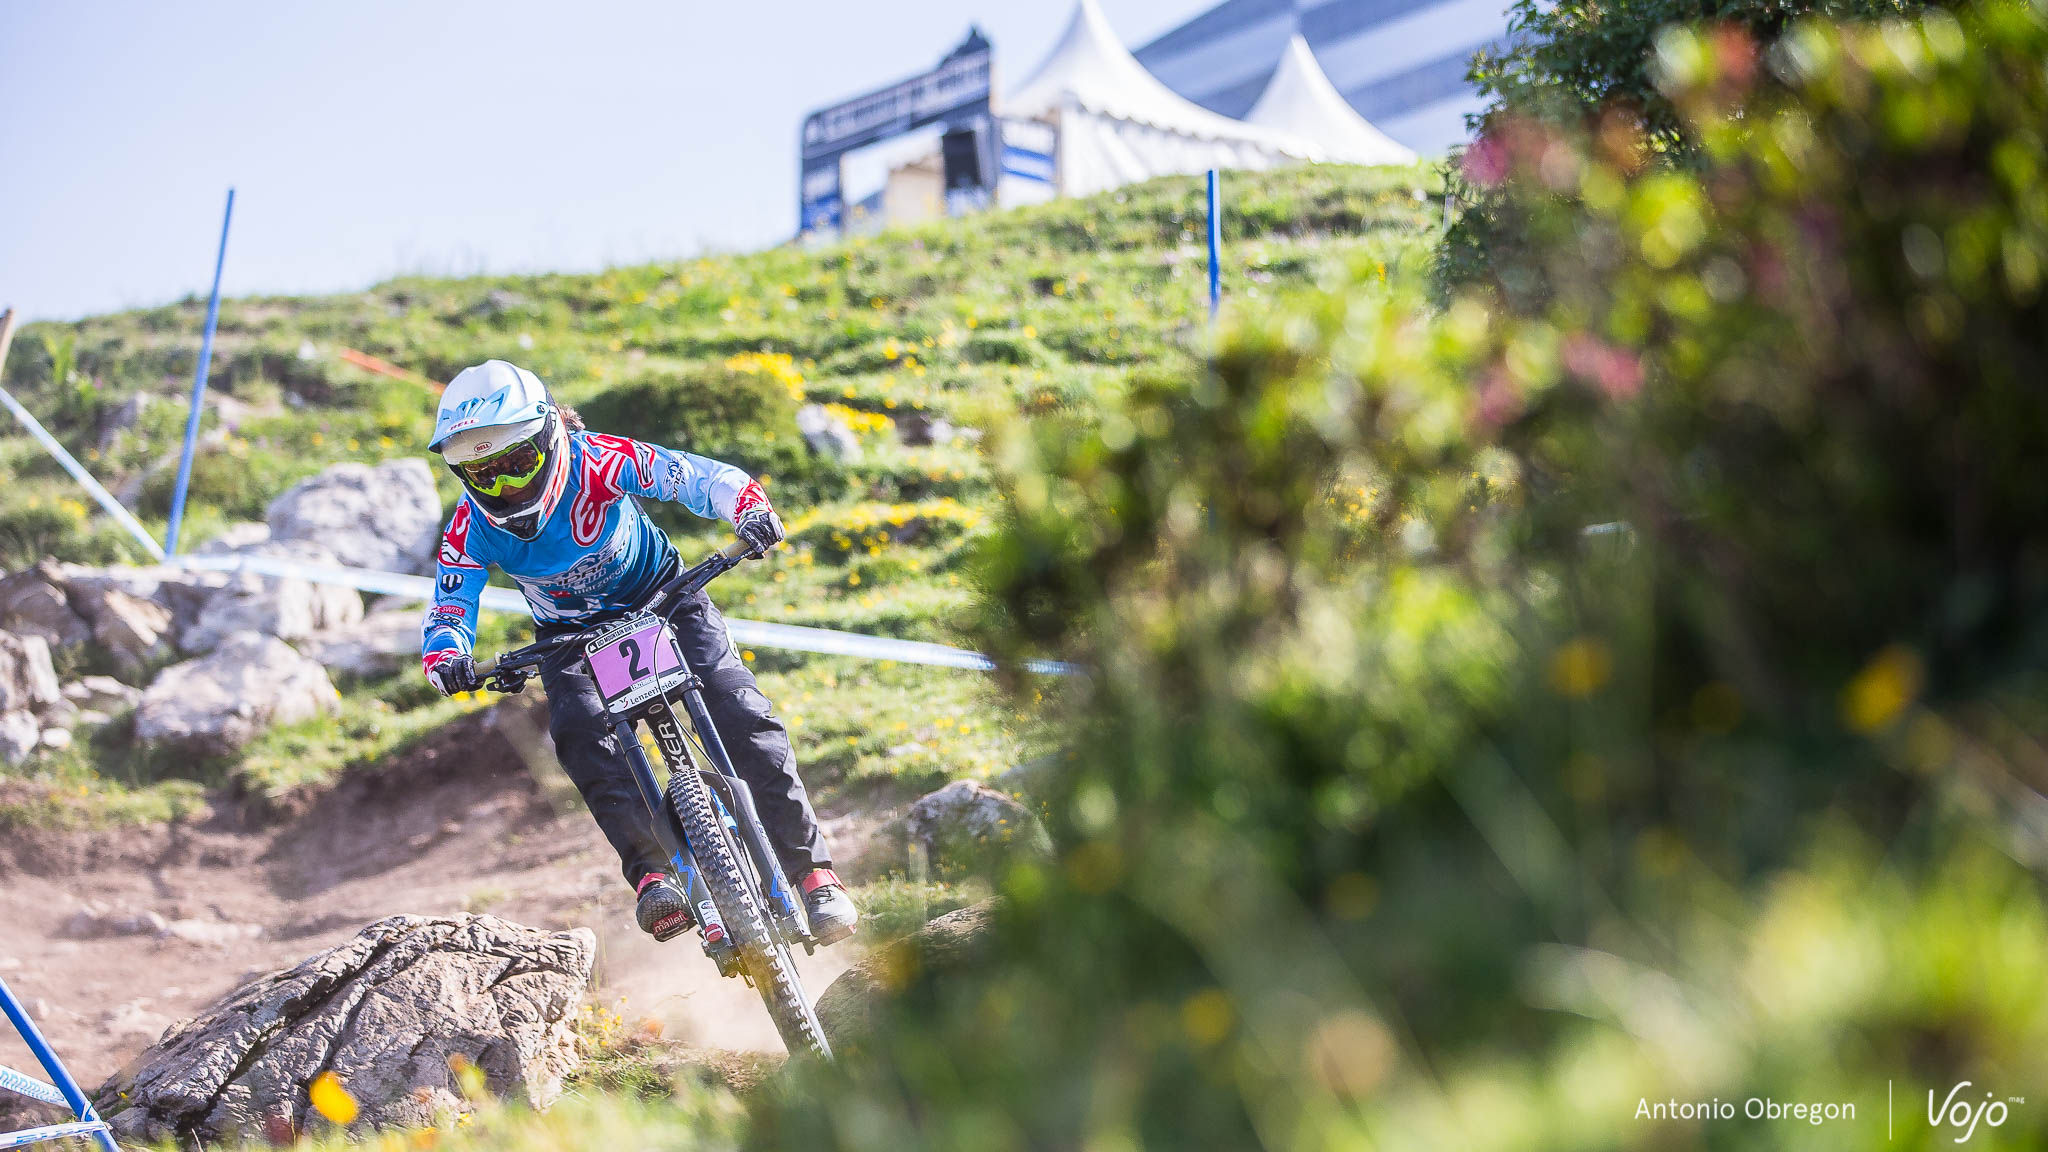 Lenzerheide_UCI_World_Cup_DH_2015_final_Porfoli_Women_Copyright_Antonio_Obregon_VojoMag-13